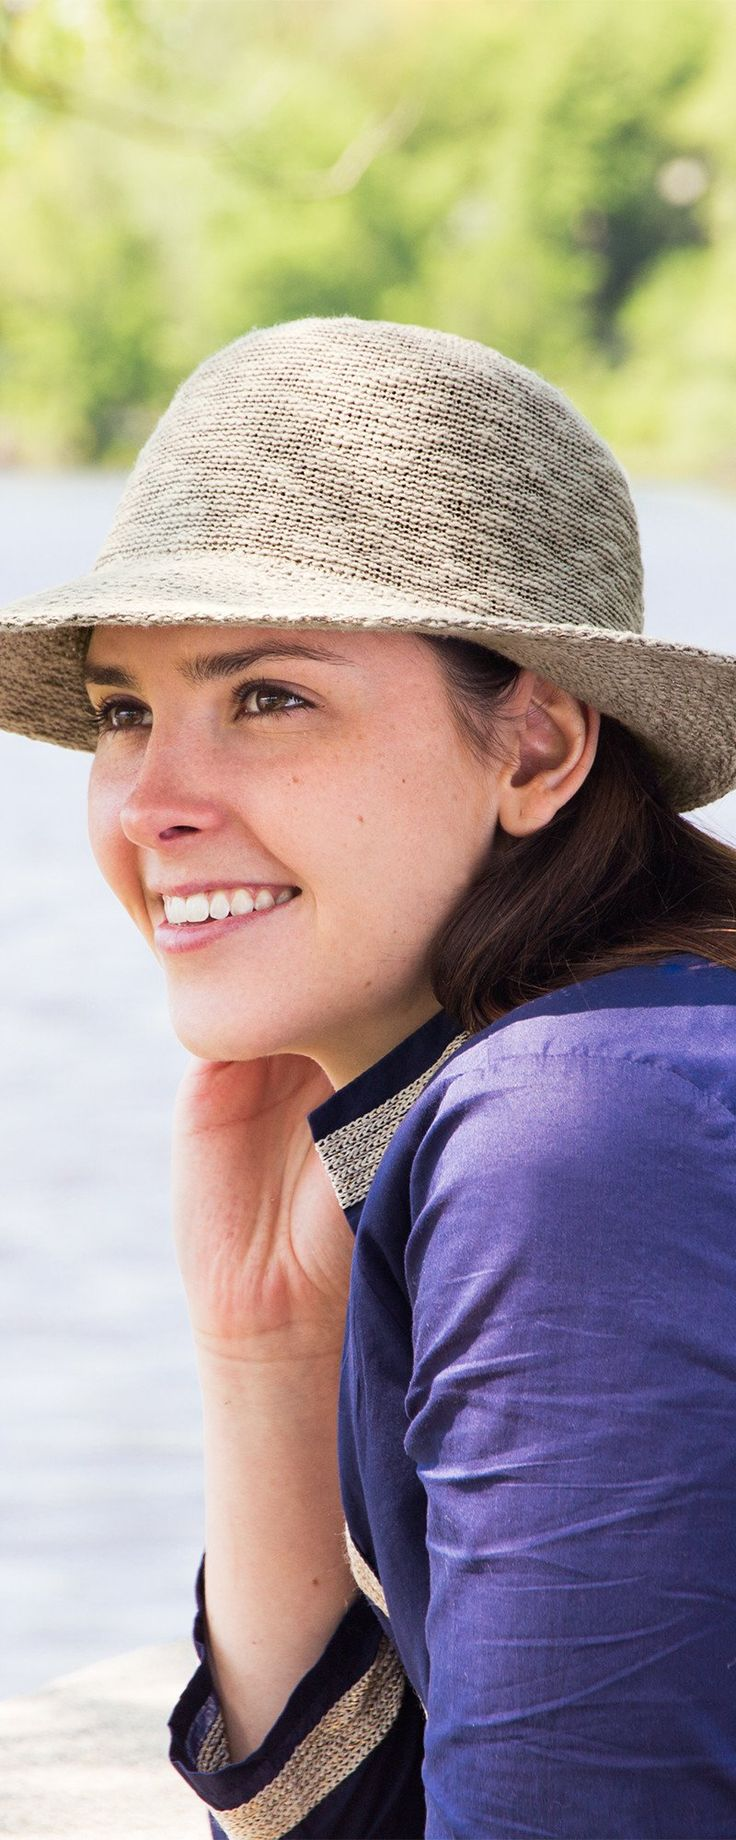 Sun-fighting hats that protect you two ways and bounce back from being packed in a purse or suitcase. UPF 50+ coated fibers reflect rays and keep you cool.